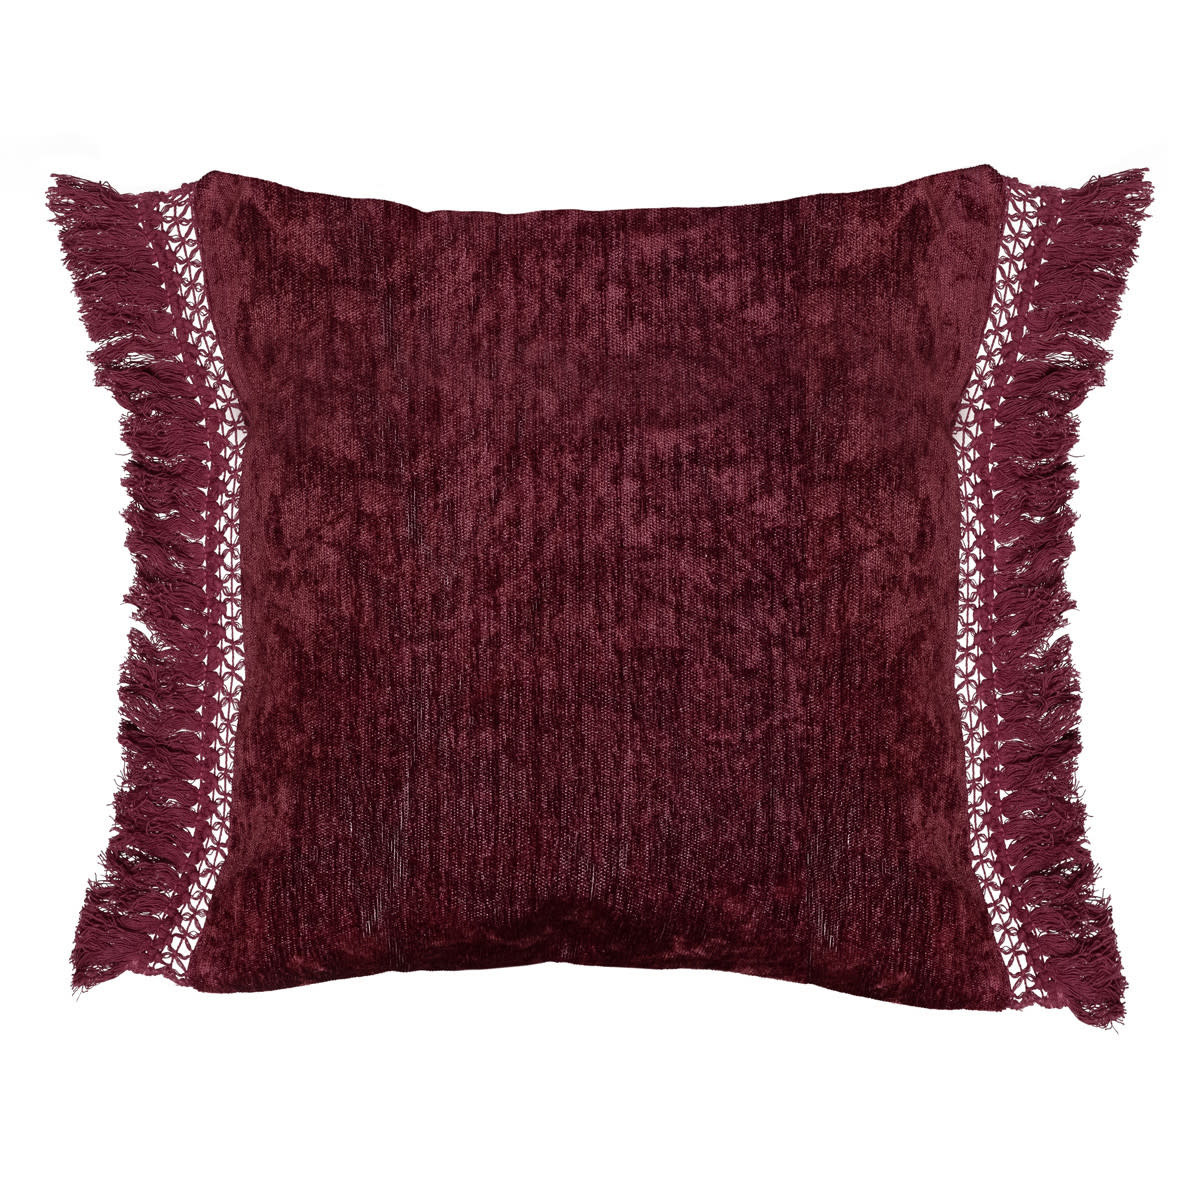 Melia Pillow Cabernet - 20 x 20